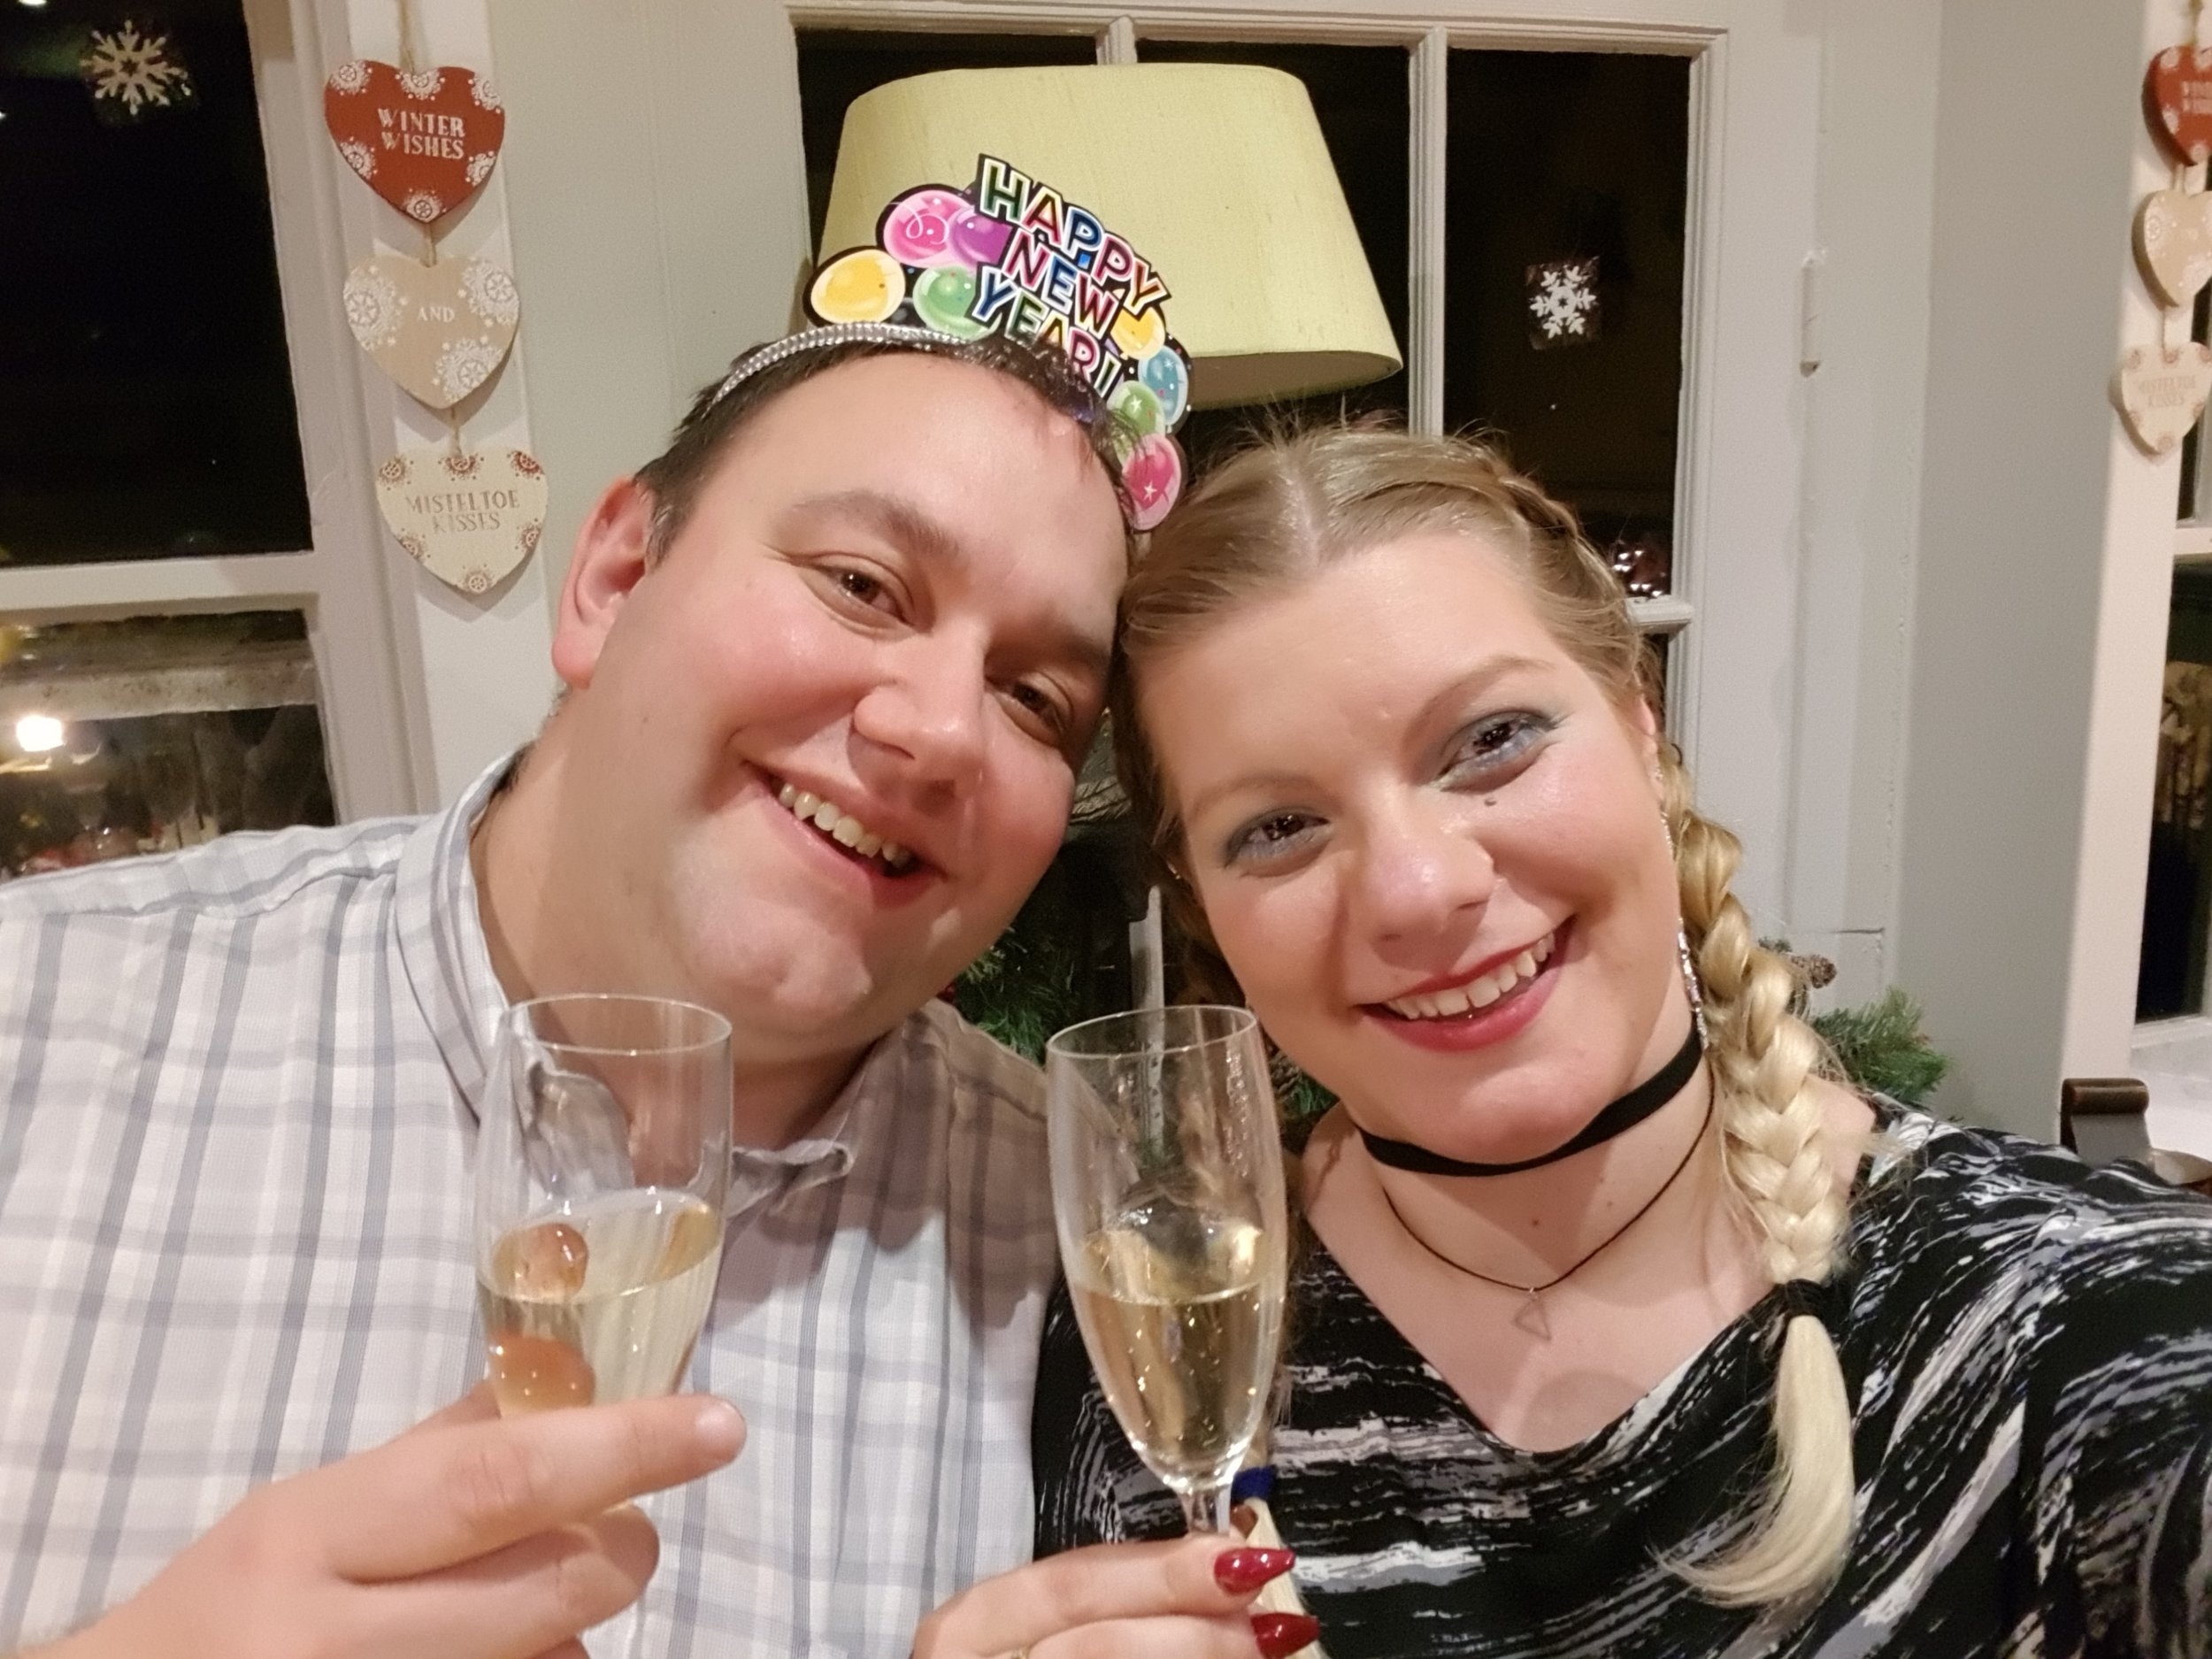 New Years Eve husband and wife and champagne